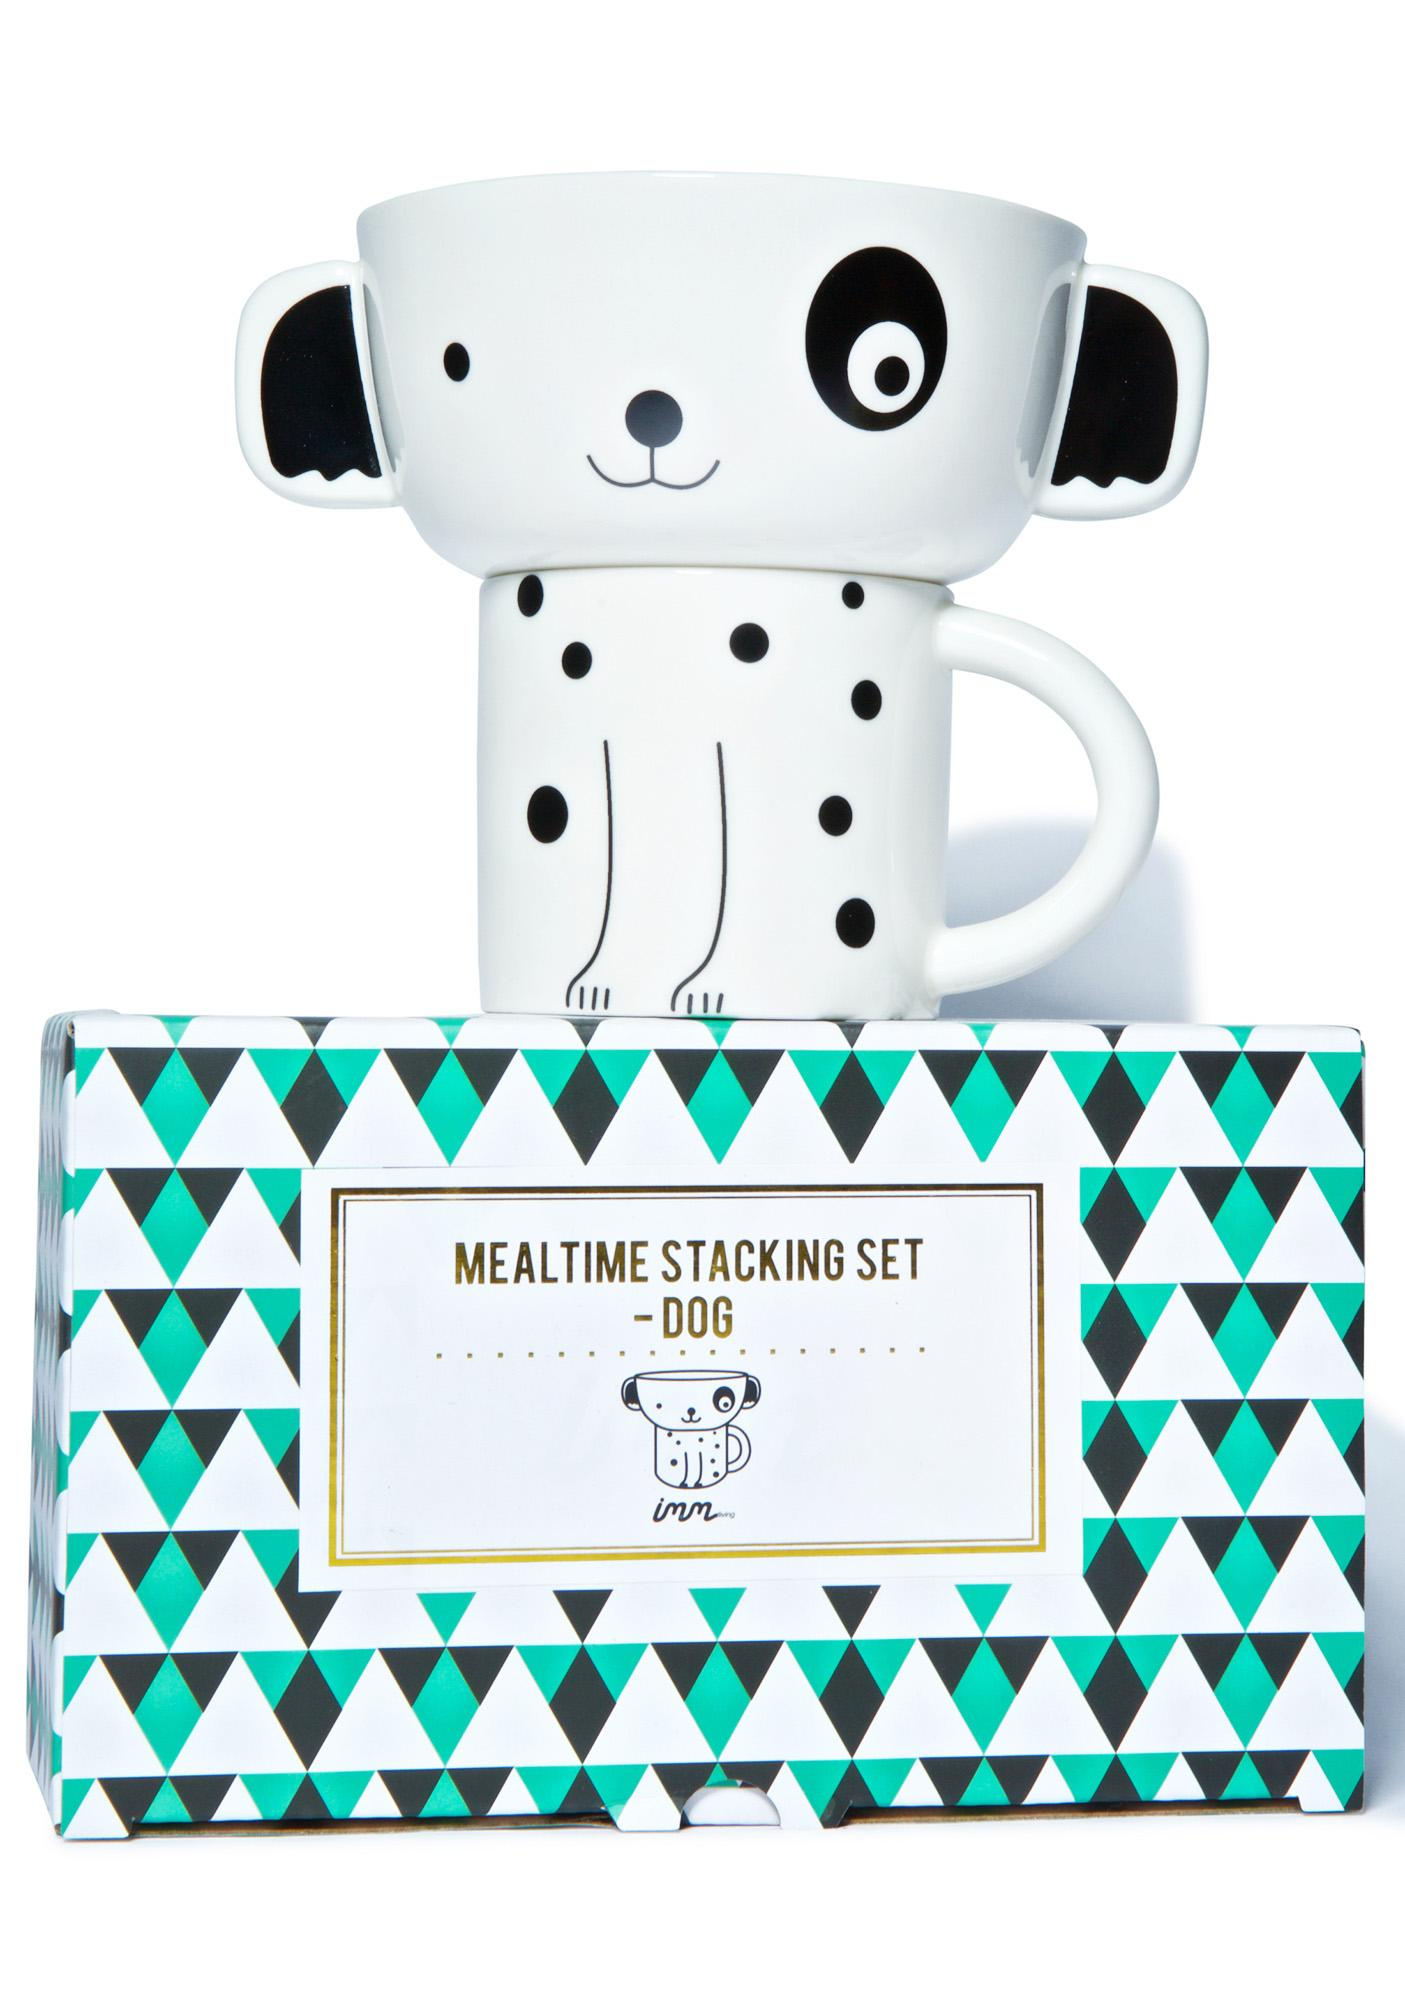 Dog Mealtime Stacking Set